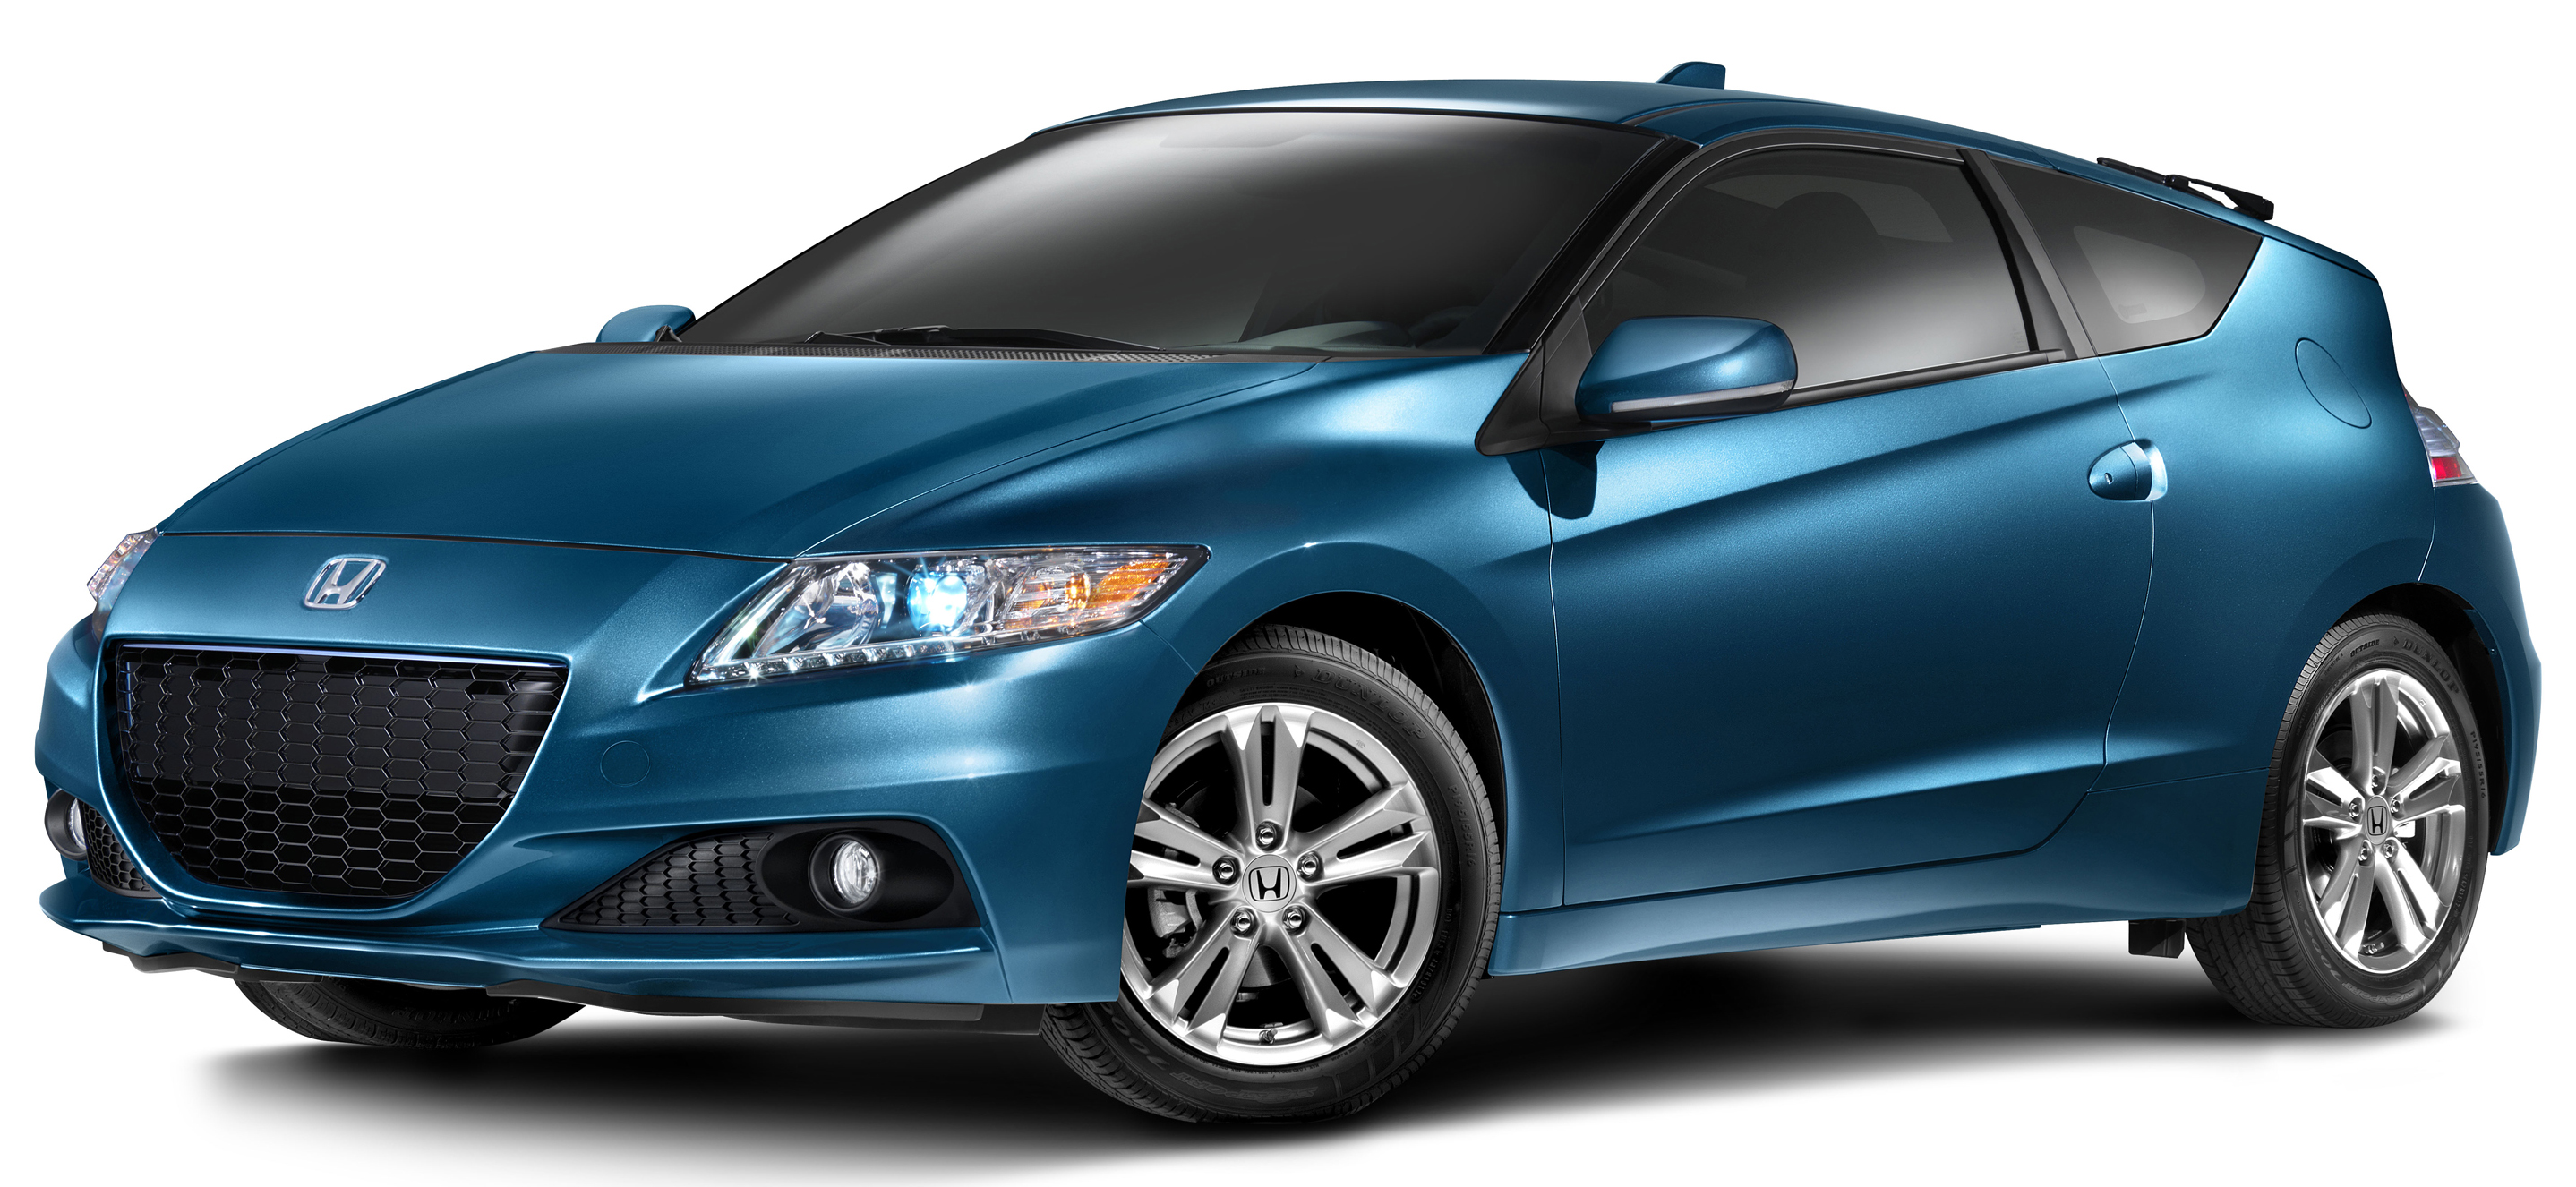 Hybrid car fight toyota prius vs honda cr z 0 60 specs for Honda hybrid cars